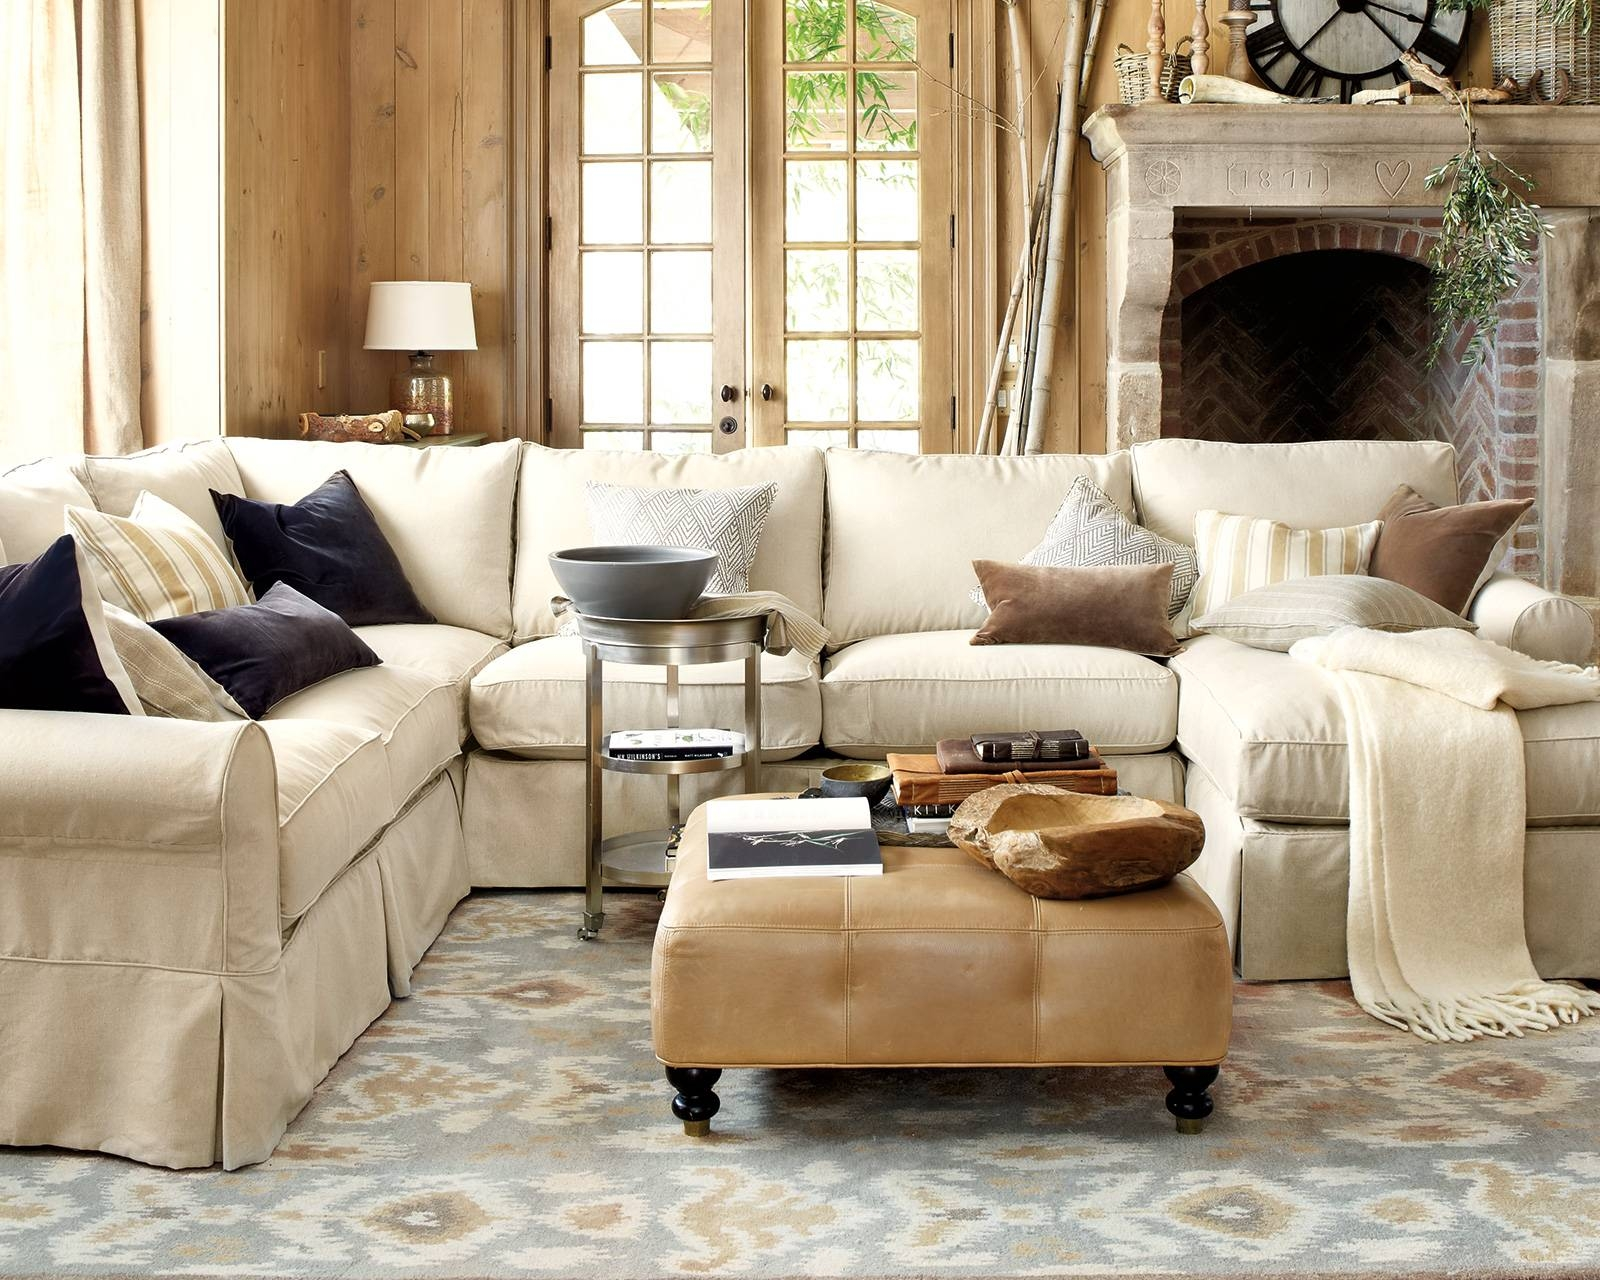 How To Match A Coffee Table To Your Sectional - How To Decorate pertaining to Coffee Table for Sectional Sofa (Image 21 of 30)